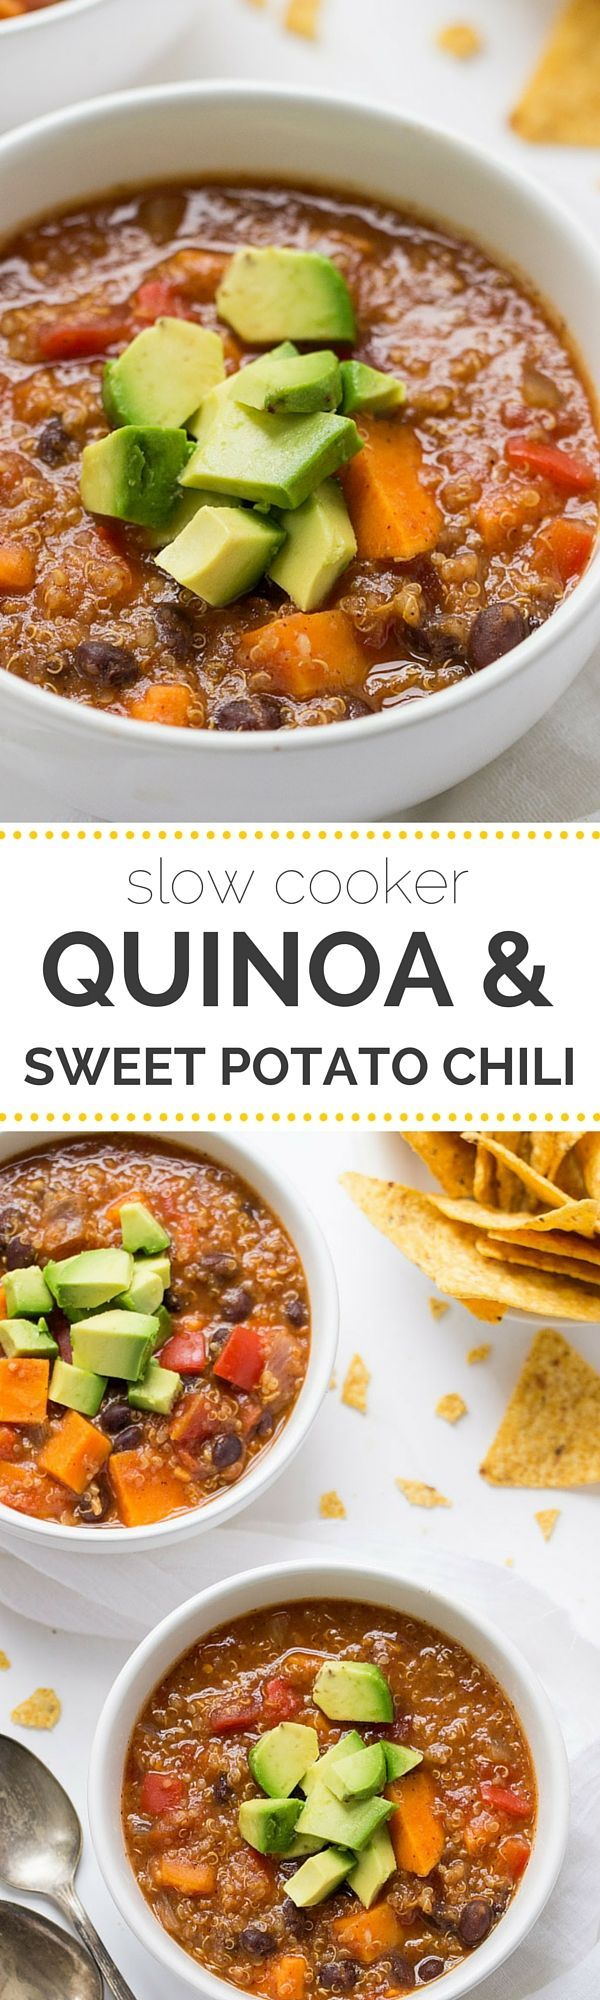 Crockpot Sweet Potato & Black Bean Quinoa Chili | Recipe ...